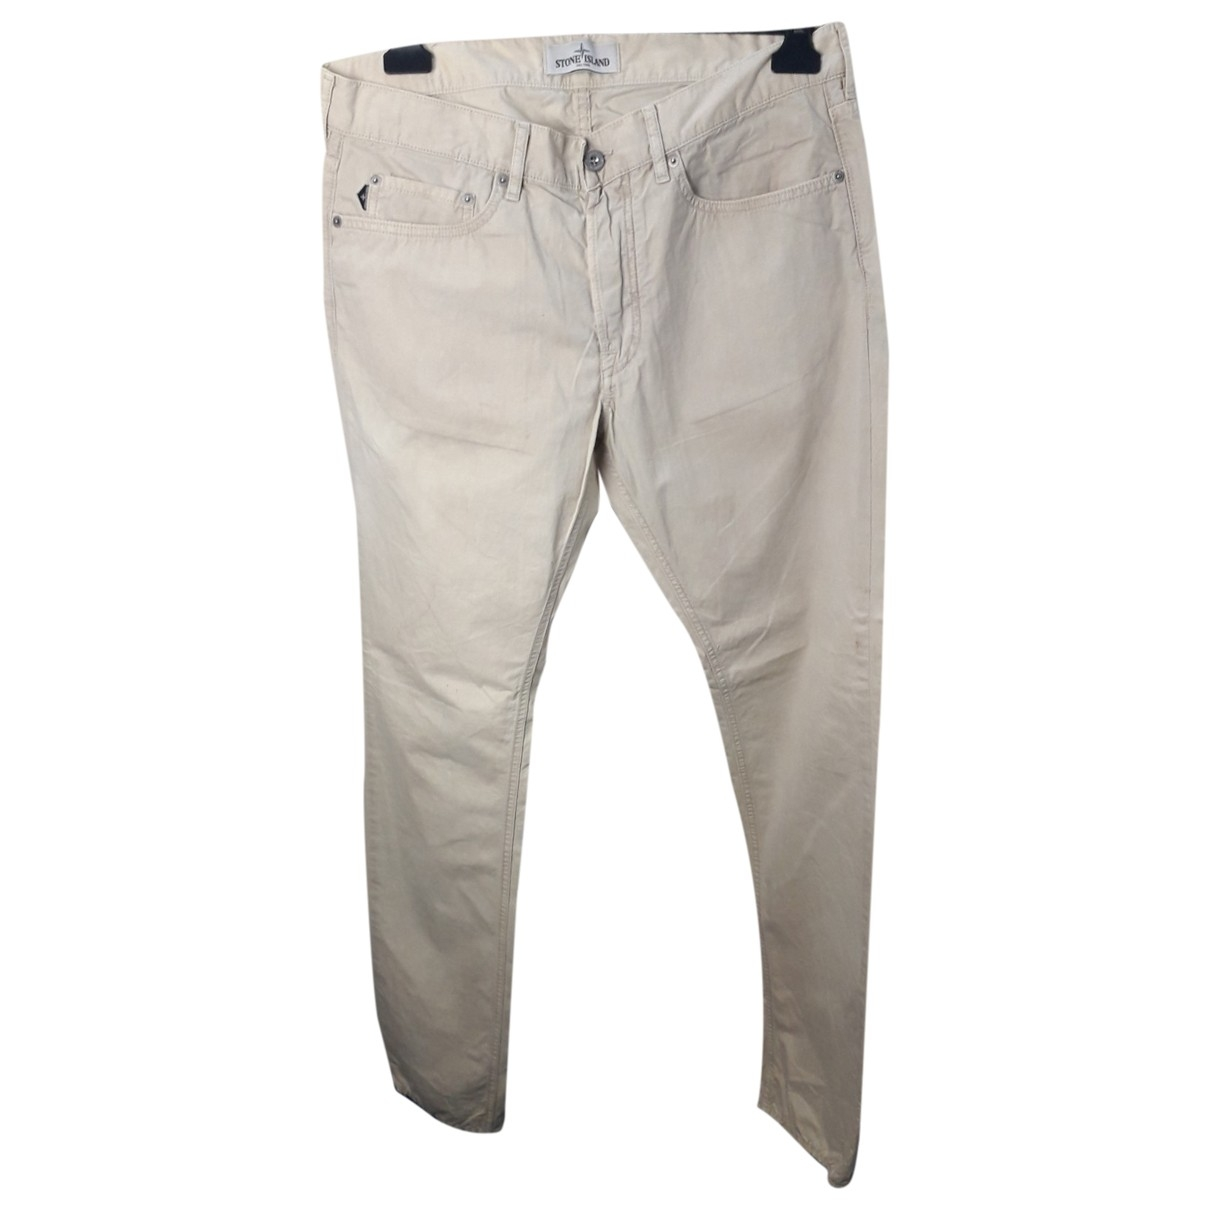 Stone Island \N Beige Cotton Trousers for Men 34 UK - US